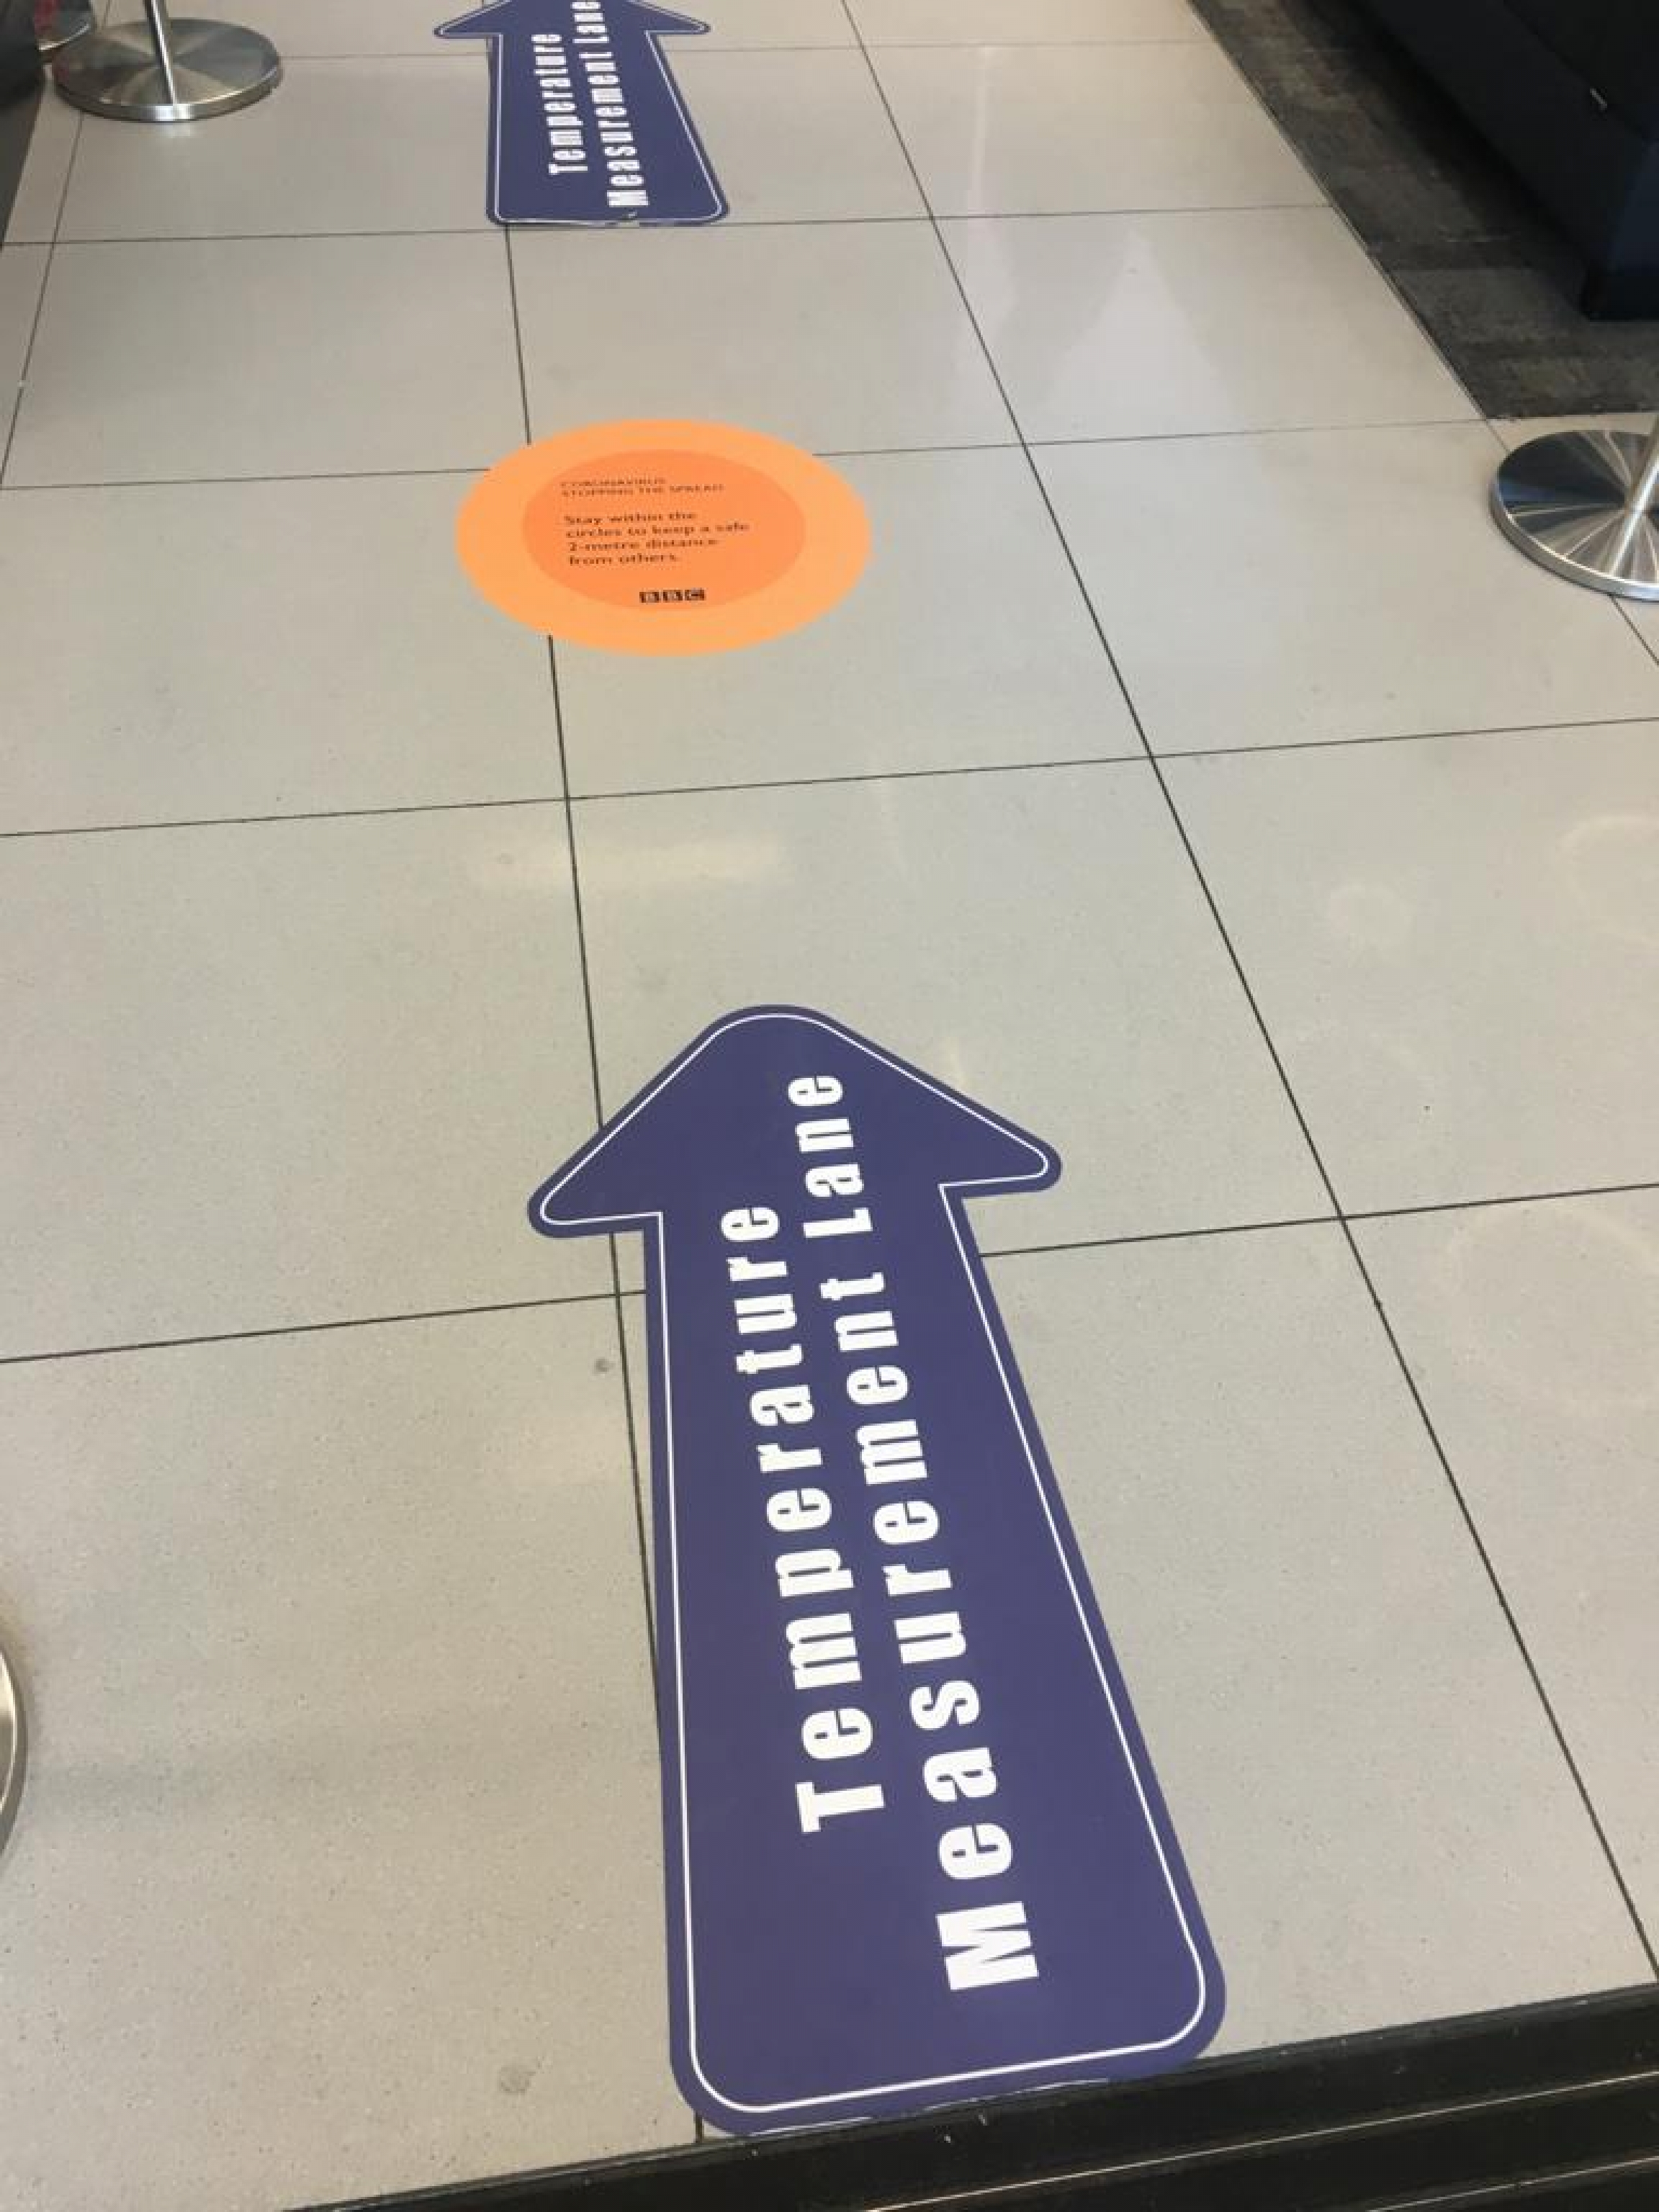 Signs on the floor at the BBC direct people to the thermal scanners.